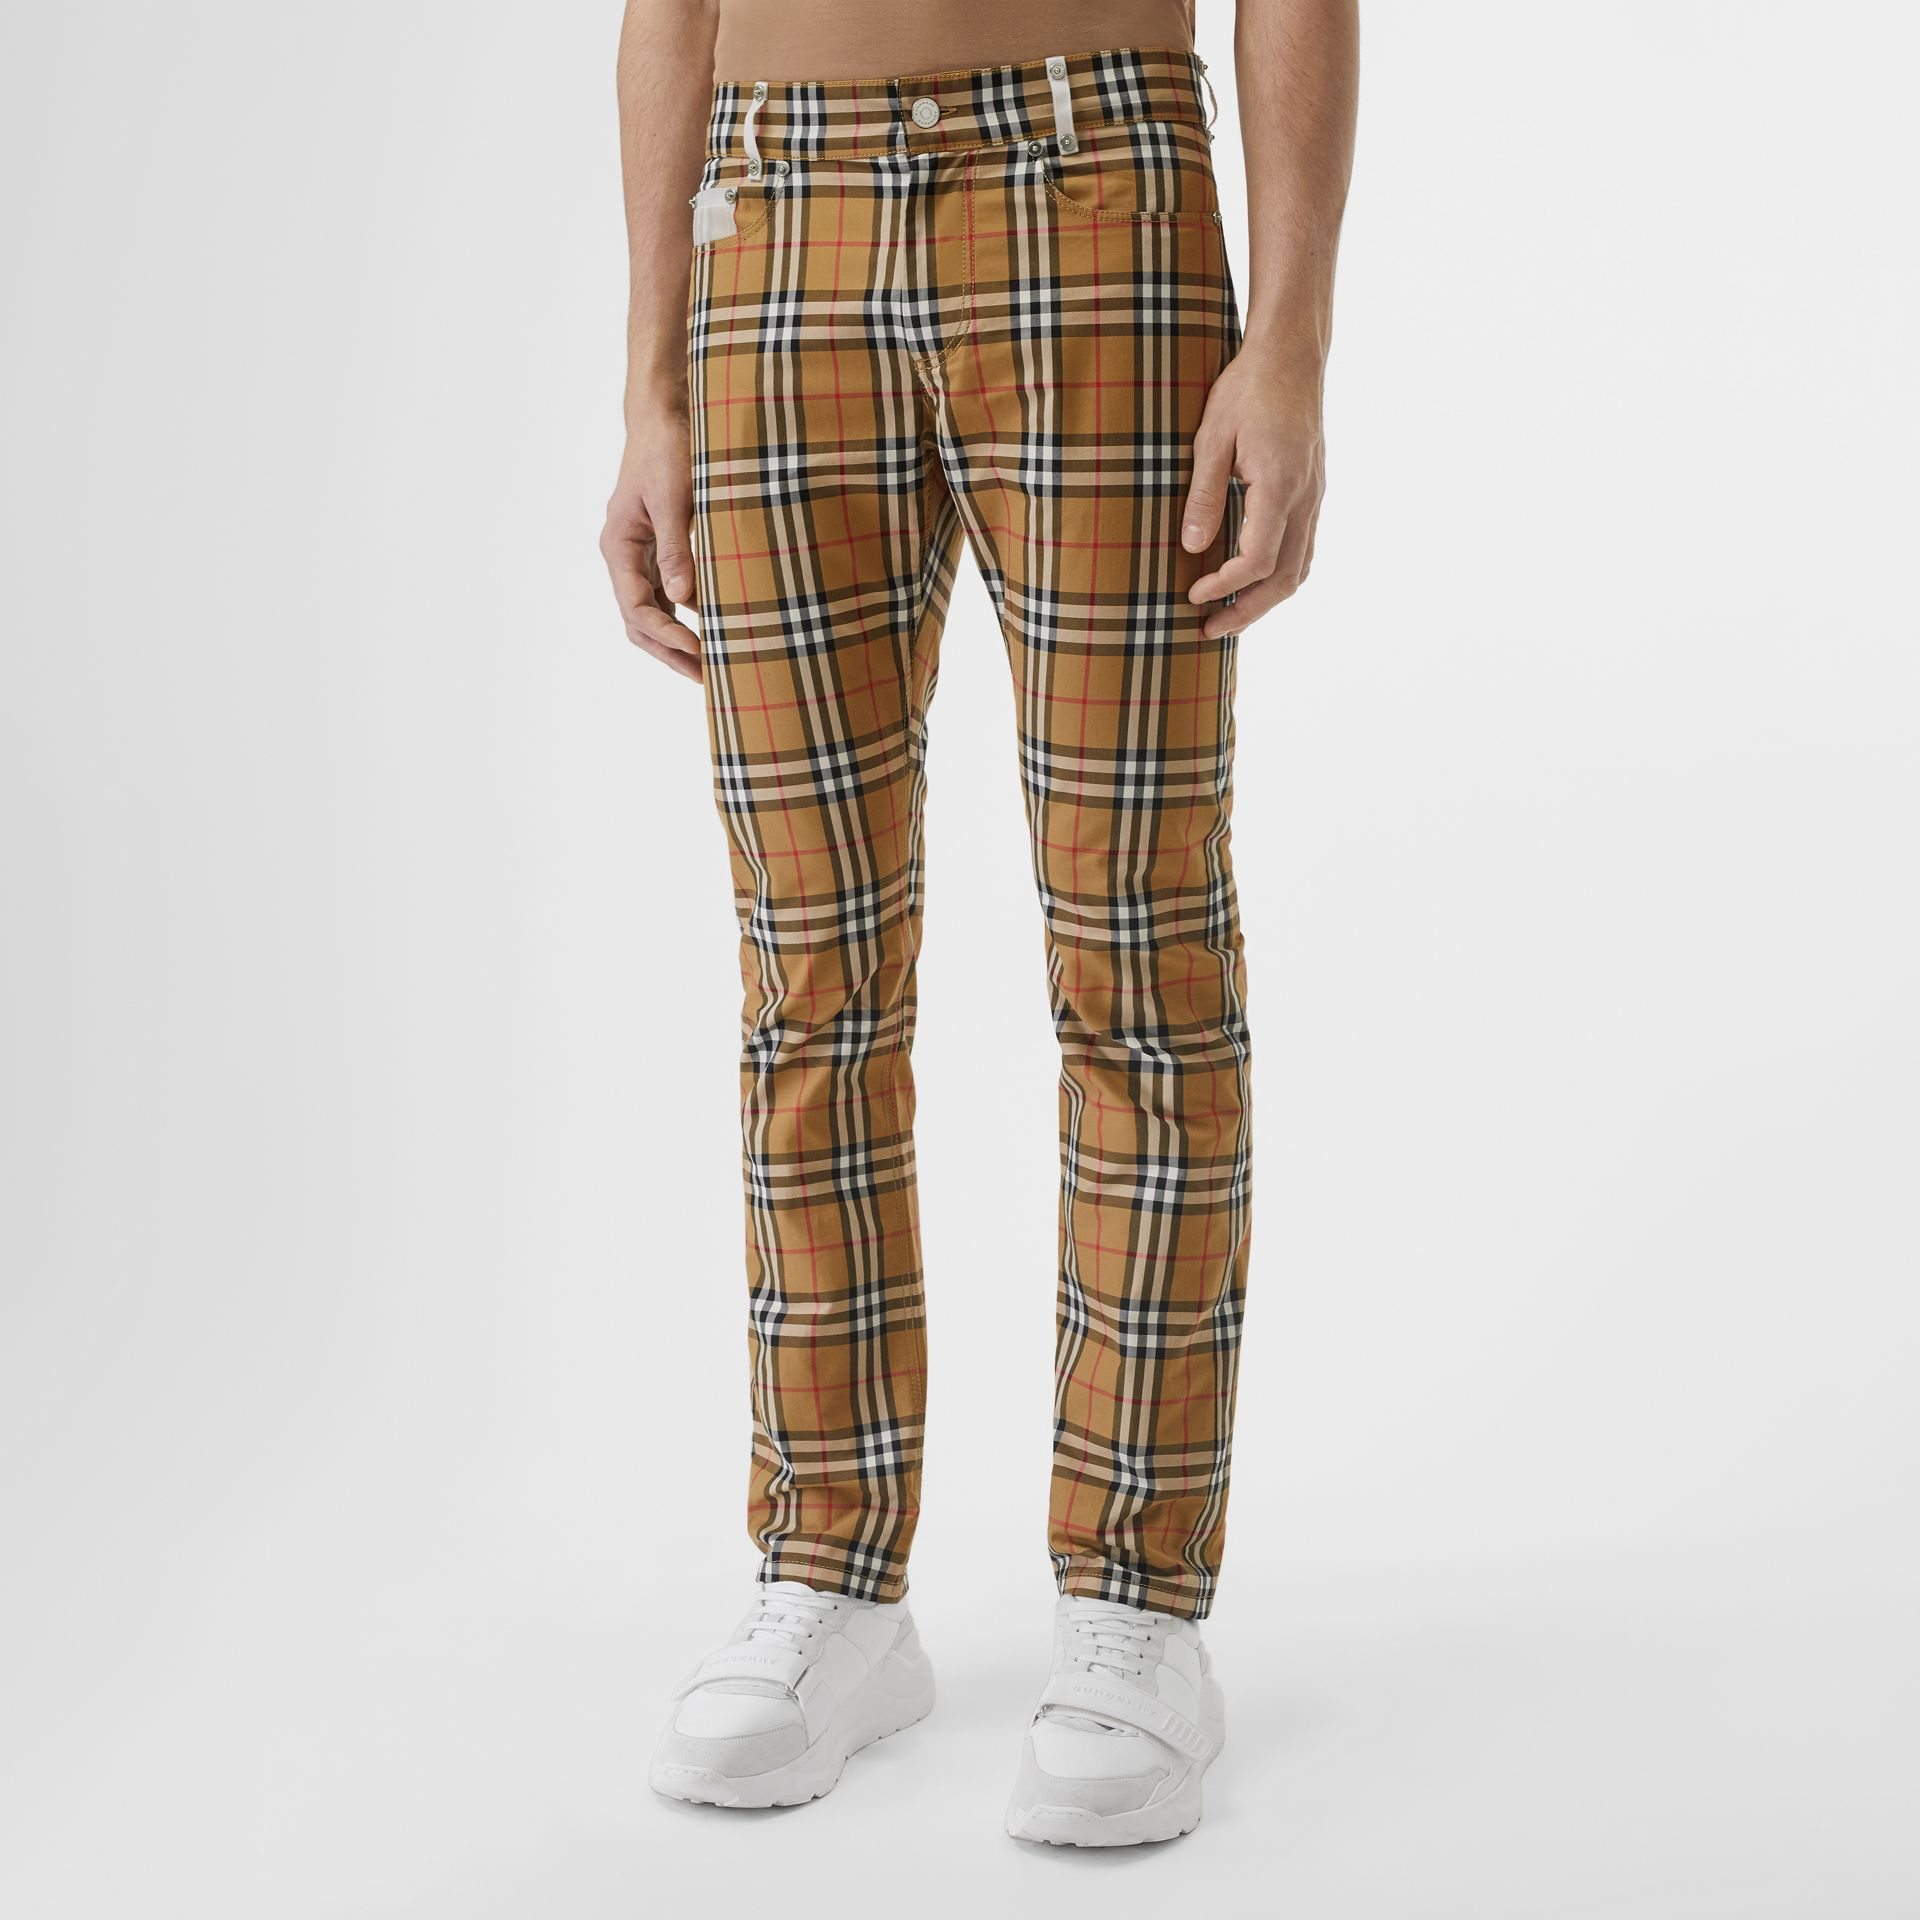 Pantalon en coton à motif Vintage check (Jaune Antique) - Homme | Burberry - photo de la galerie 1